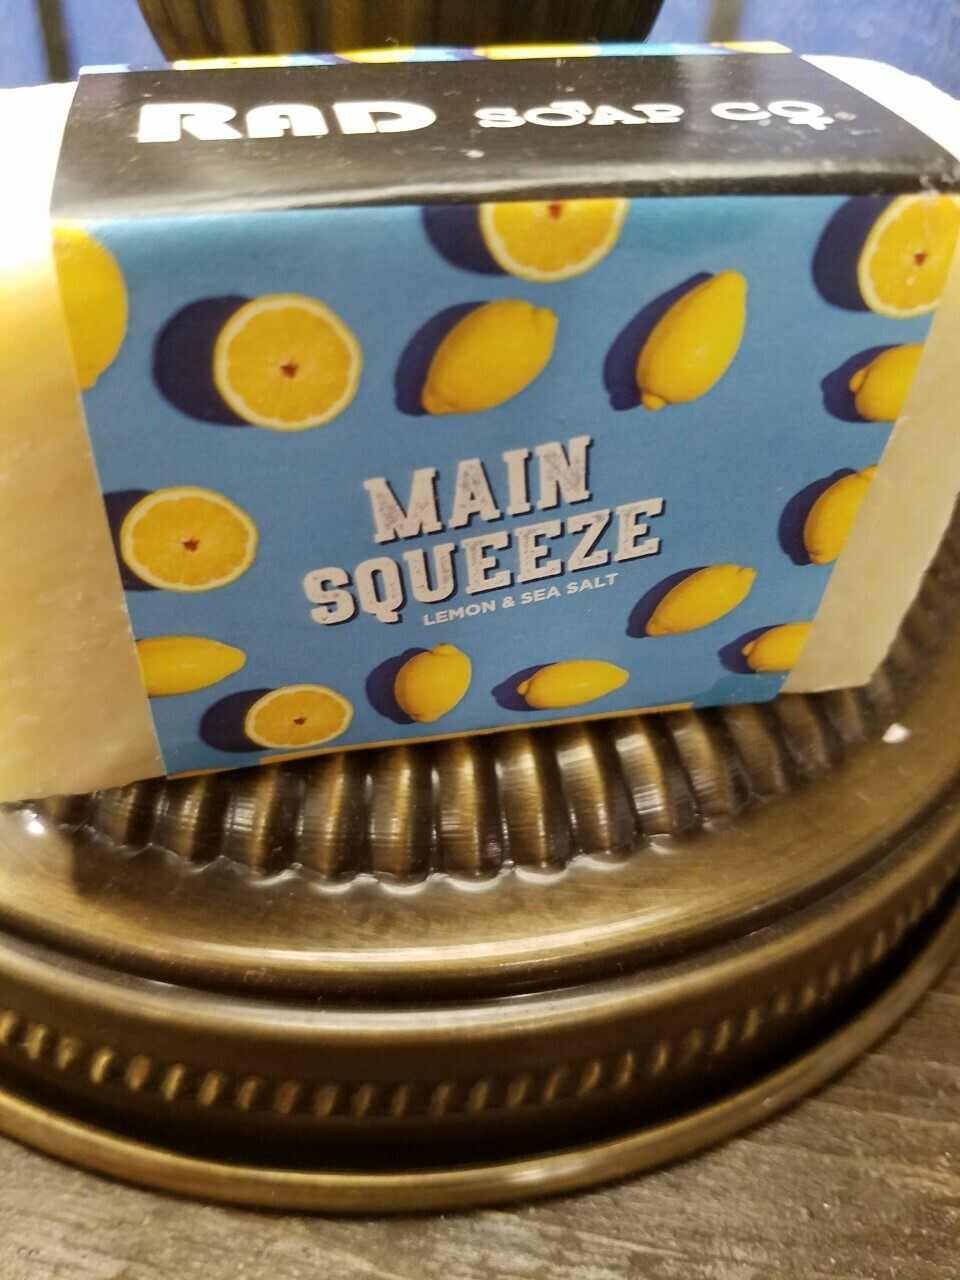 Soap RAD-Main Squueze -Made in the N.Y.